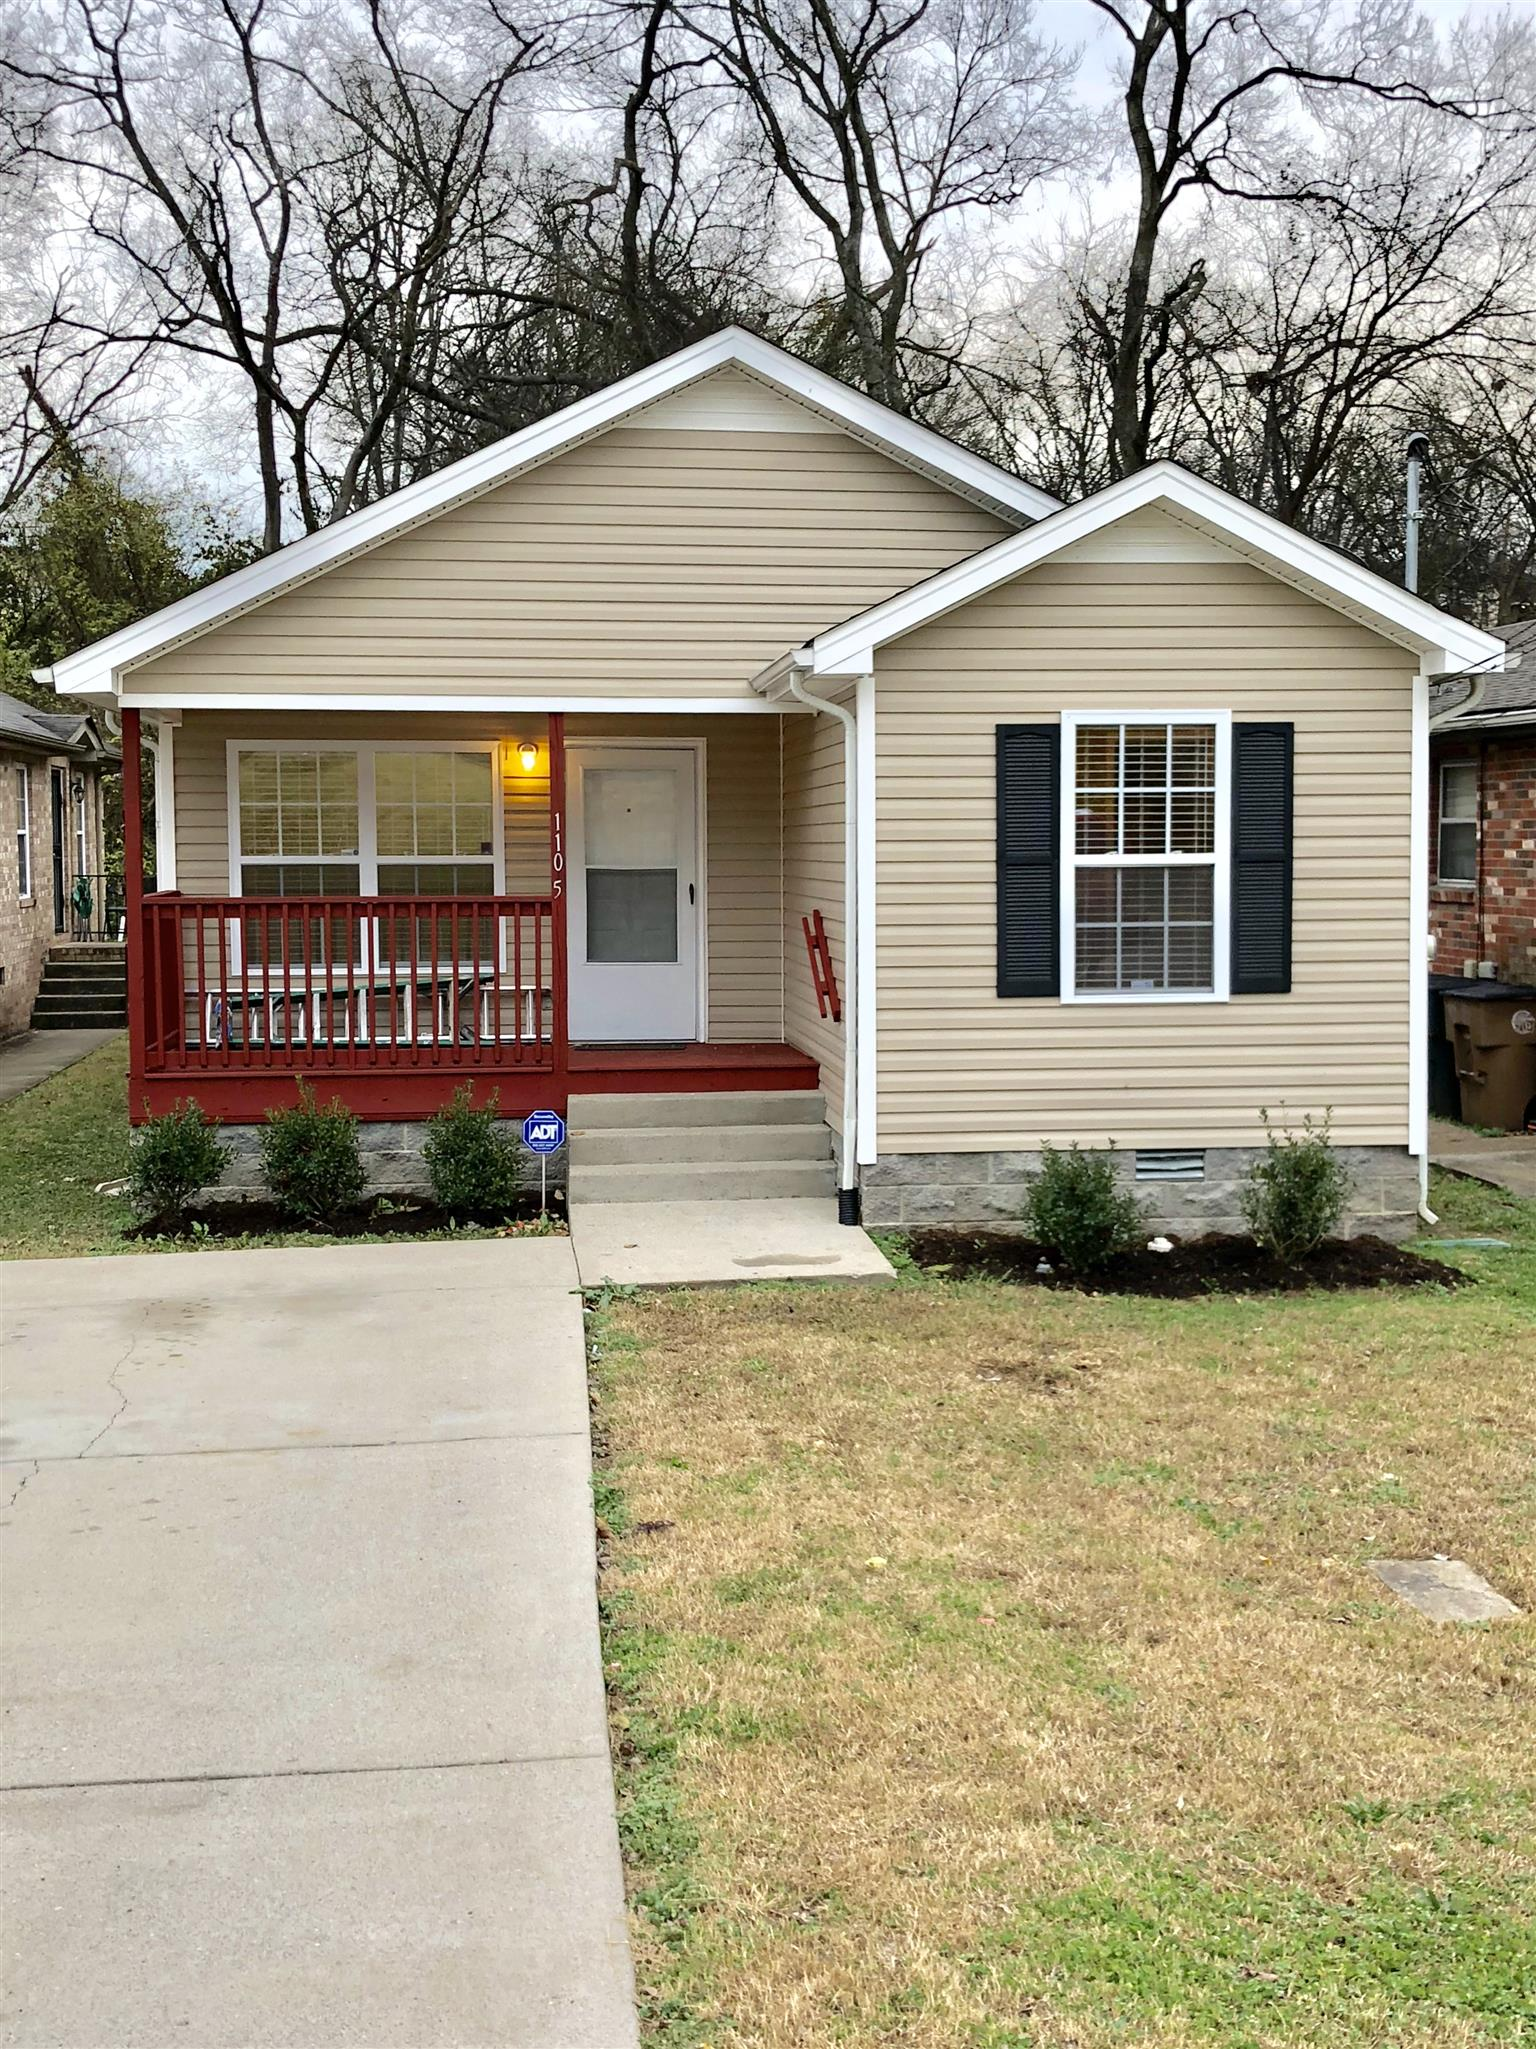 MOVE IN READY! Freshly painted, fresh floors, newly stained deck, new privacy fence, and more! Zoned R6: One And Two Family - (6,000 Square Foot Lot) / Ov-Uzo: Urban Zoning Overlay (Two can be build on this lot). Could rent out easily until ready to build!